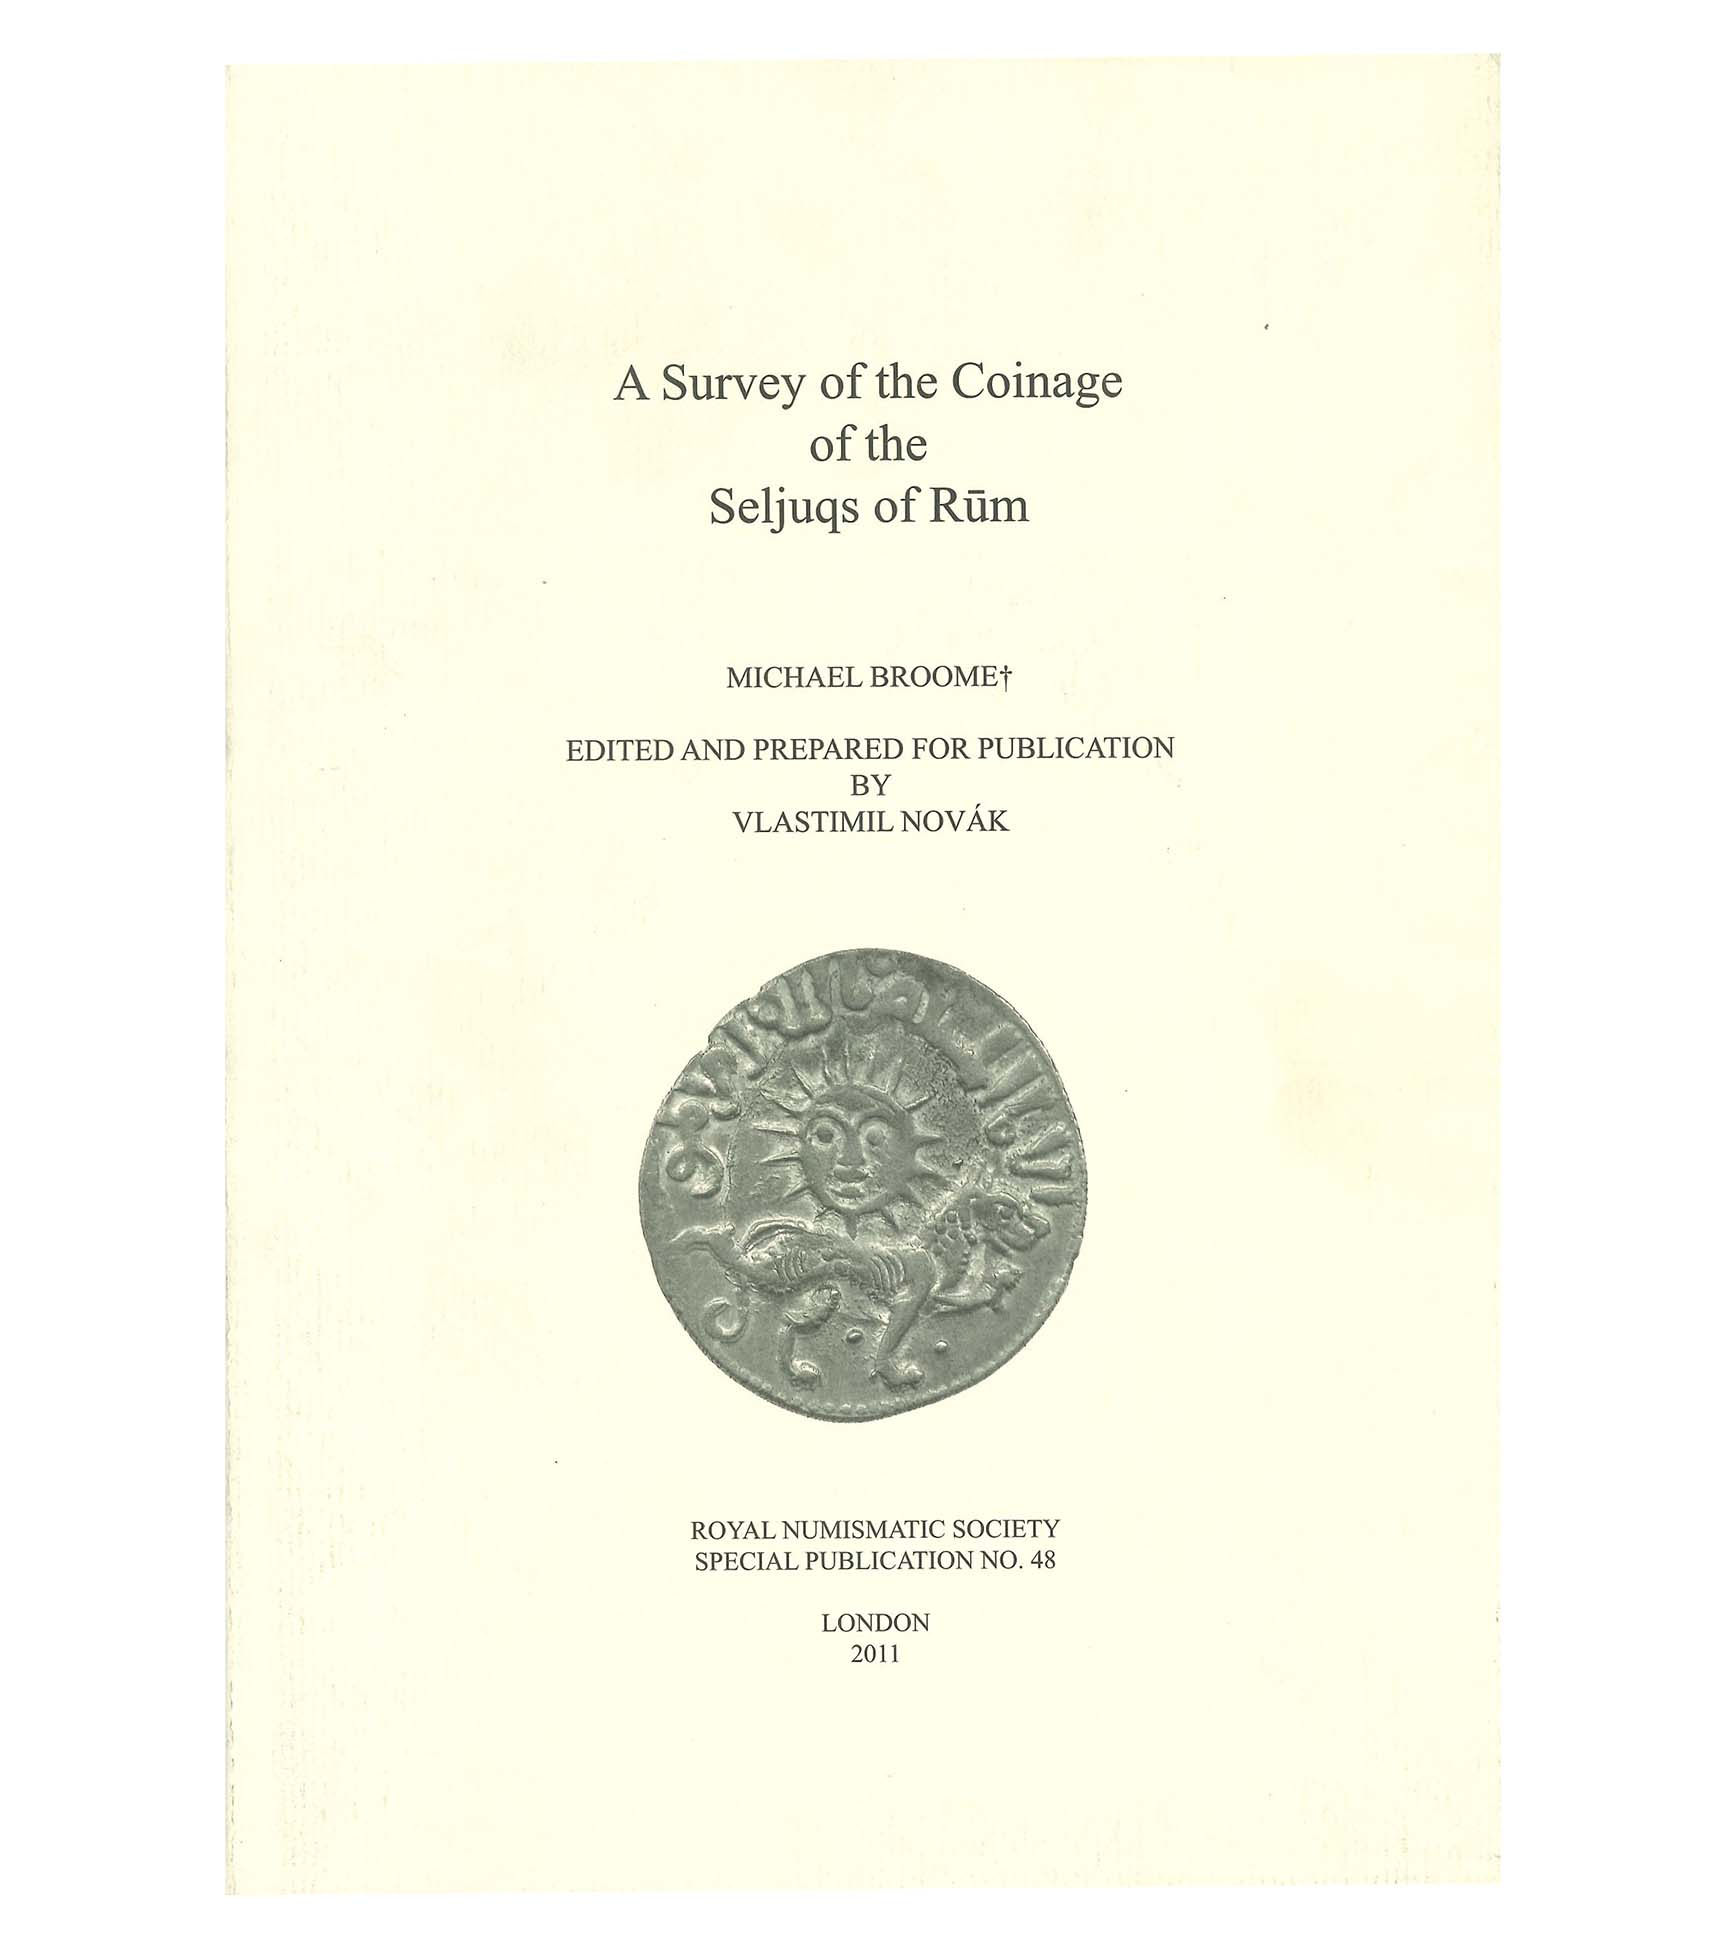 A Survey of the Coinage of the Seljuqs of Rum